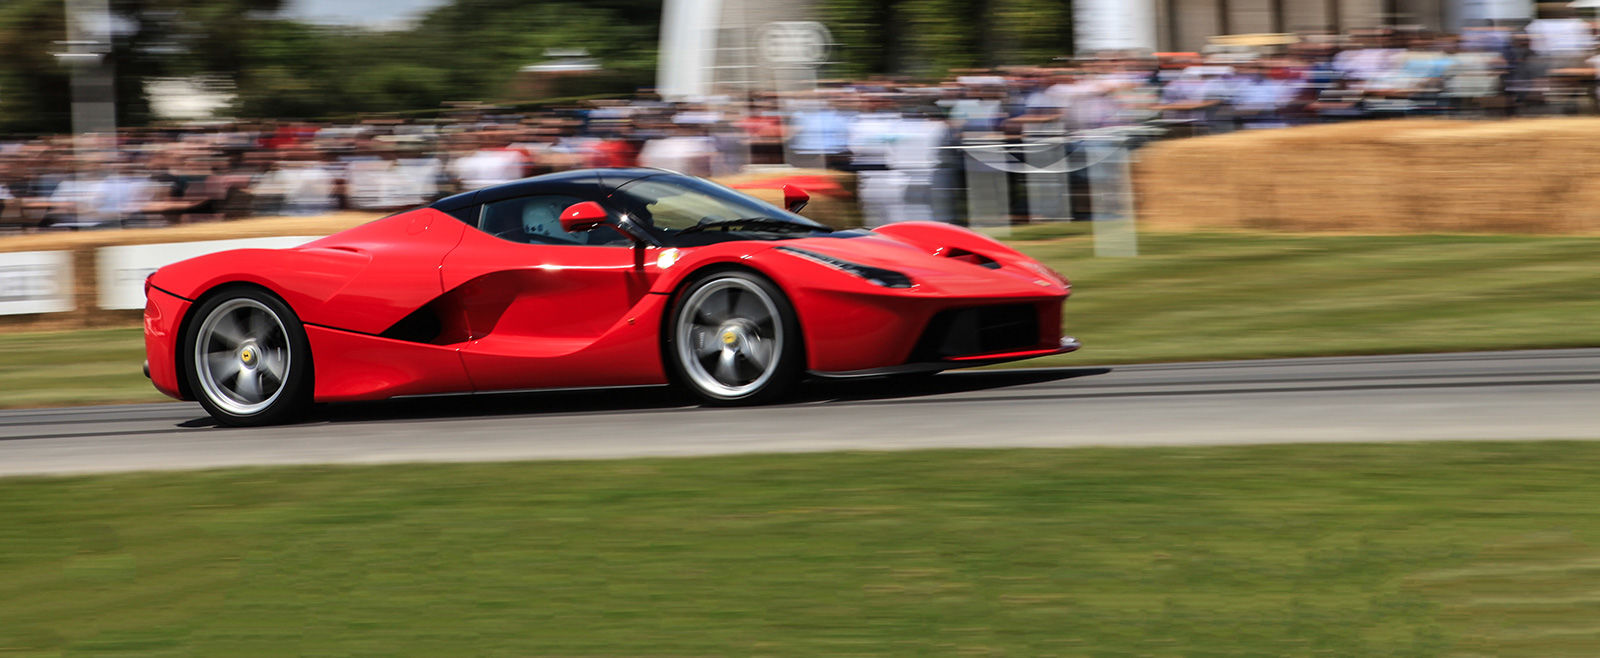 Arguably The Most Iconic Car Colour Ever, Ferrariu0027s Rosso Corsa (racing  Red) Has Graced Most Of Its Cars Throughout Its History. Design Ideas